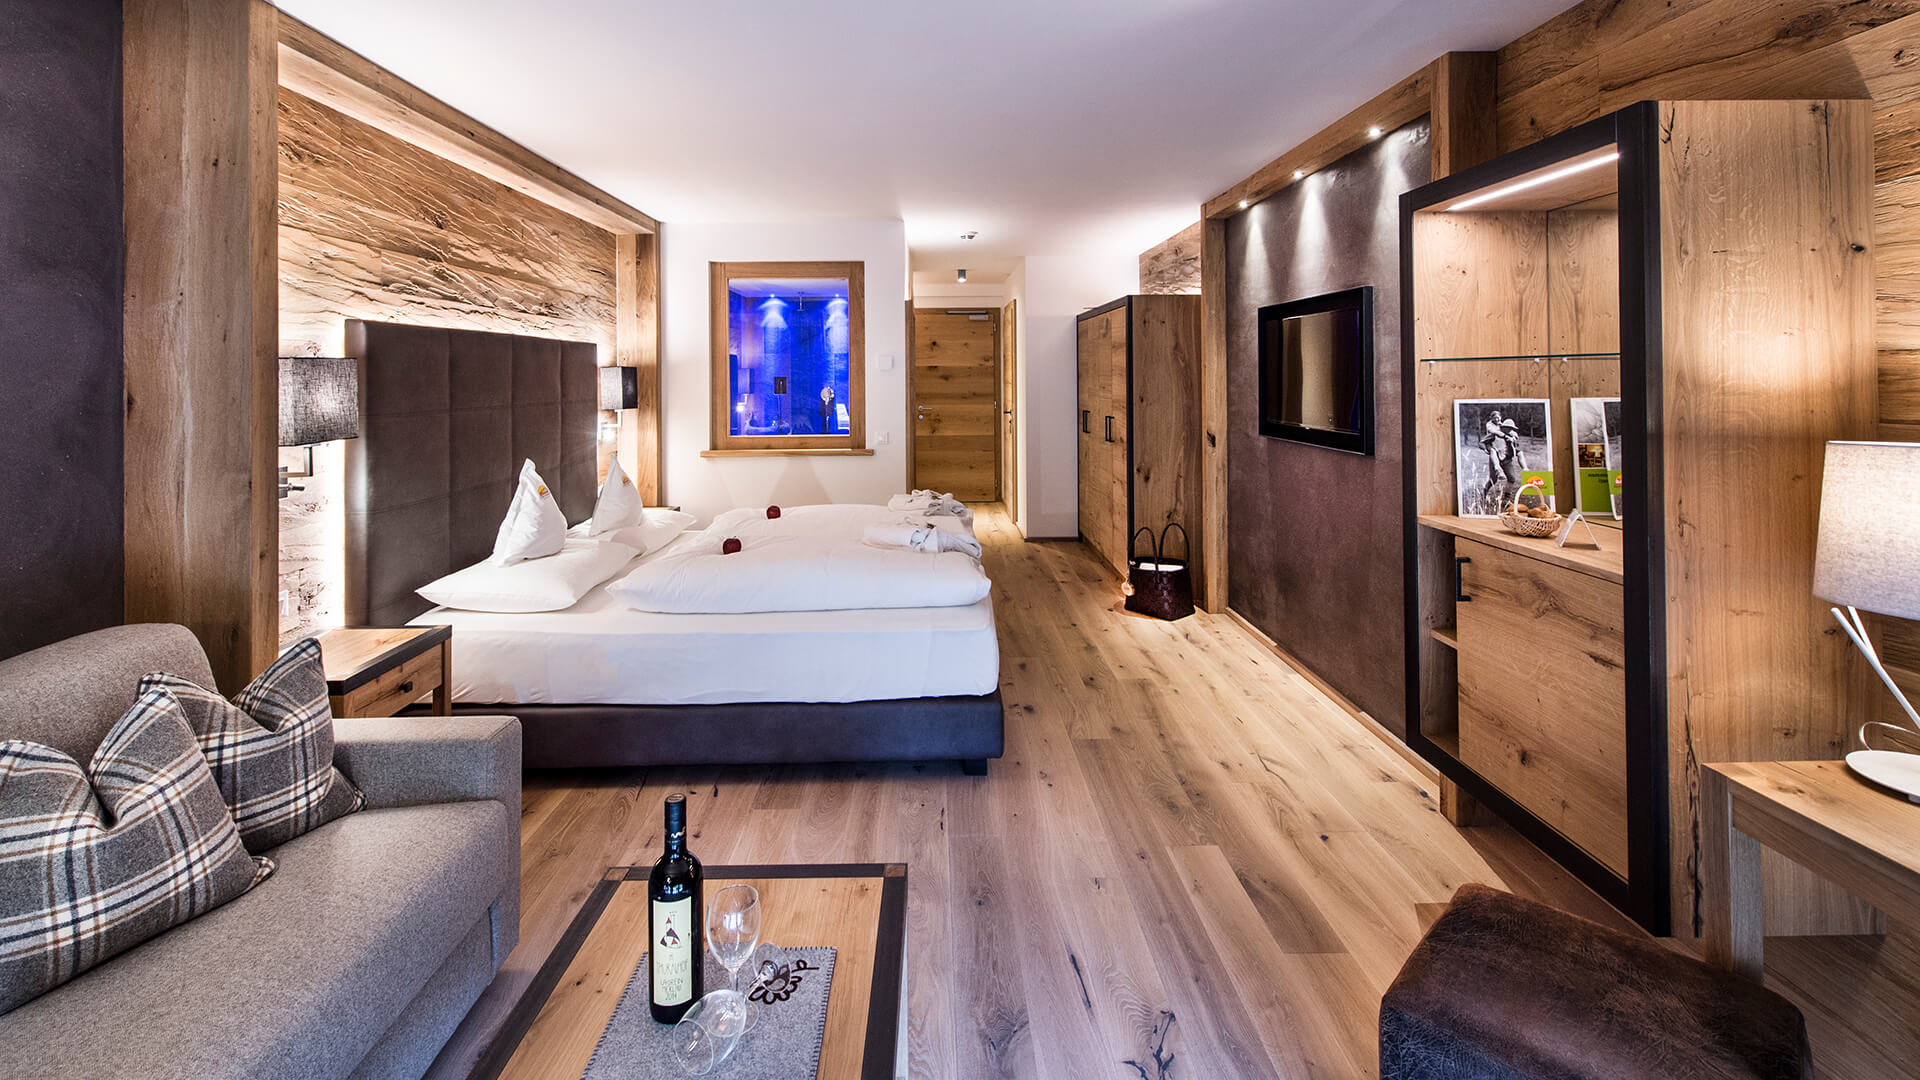 Hotel suite - oiled natural wooden floor, hacked oak walls,  oak wood cabinets. Lower bed coverage, large head board, stool and cinema panel covered with soft vegetable tanned buffalo leather. Couch, loden fabric...